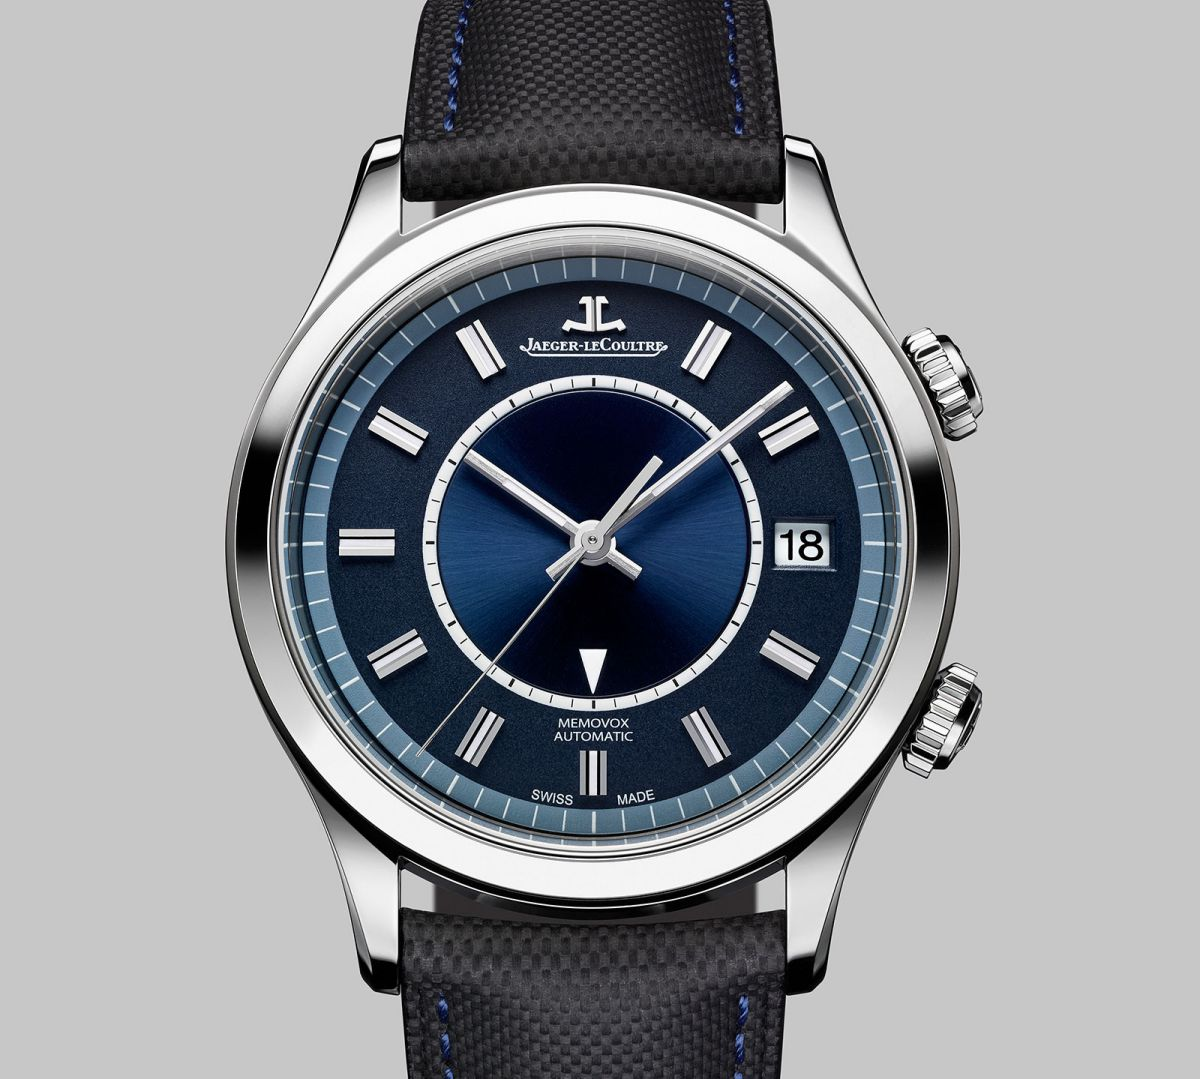 Jaeger-LeCoultre-Master-Memovox-Boutique-Edition-2.jpg